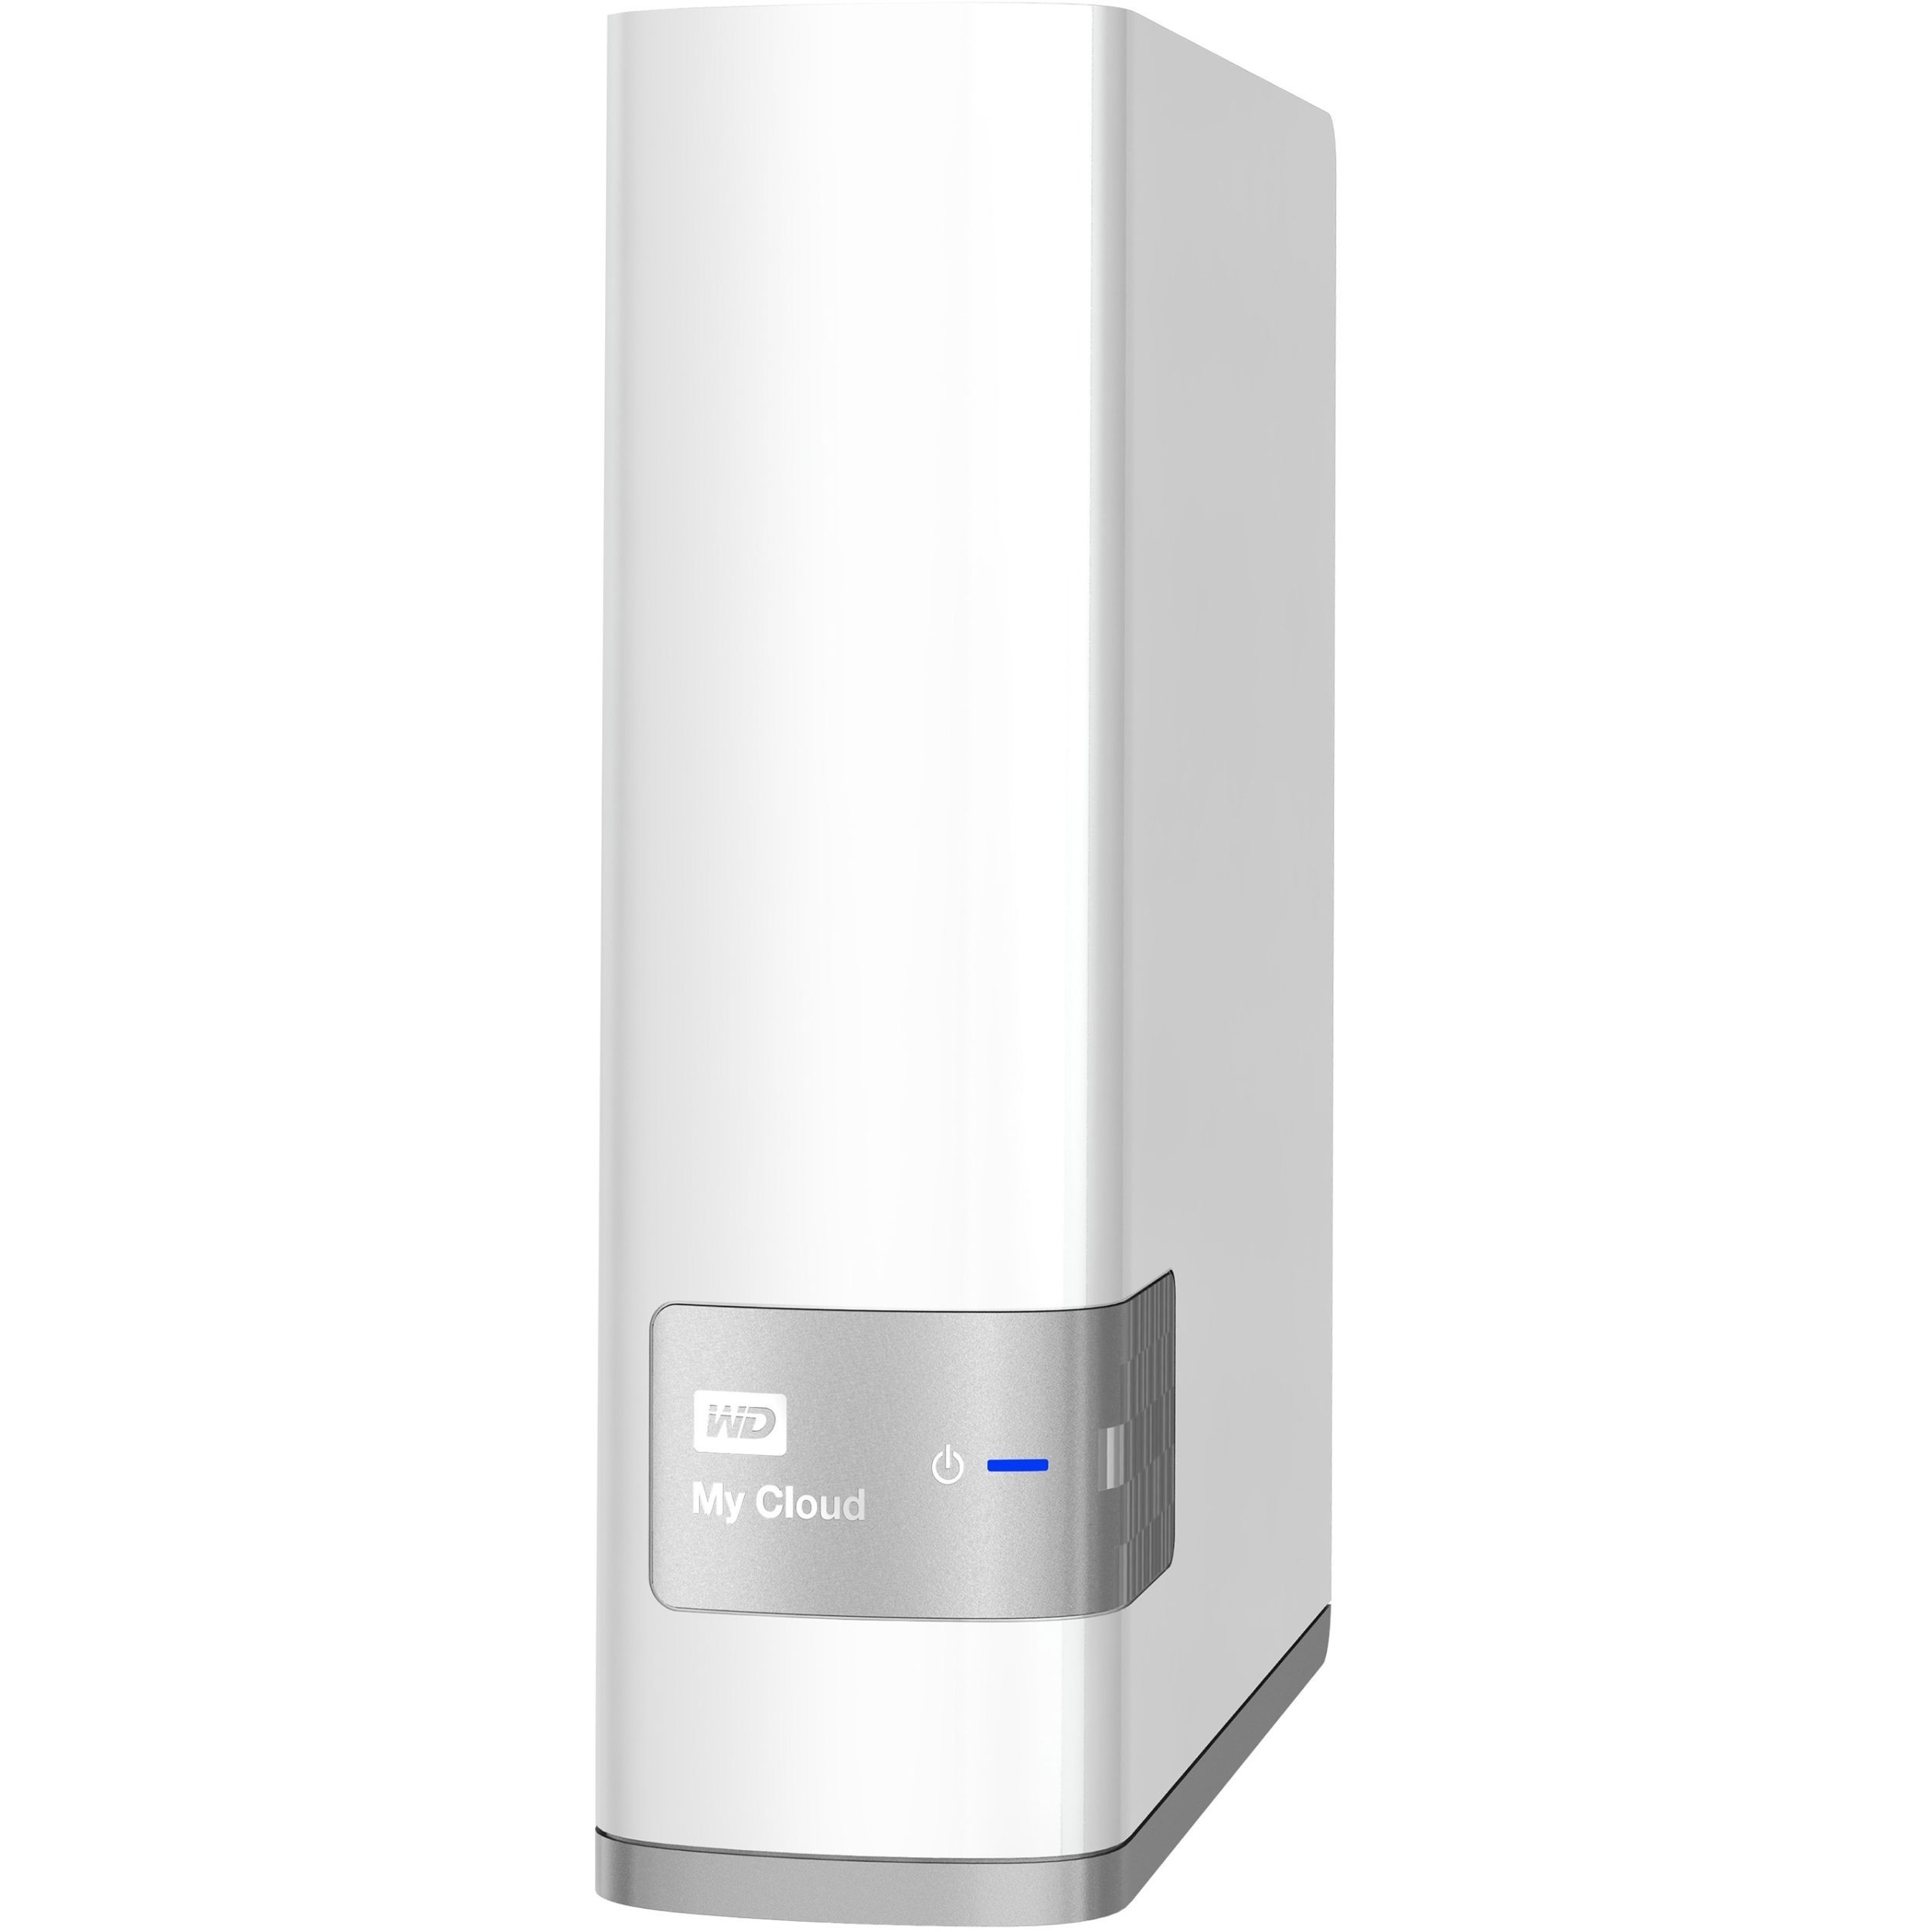 Wd 8tb My Cloud Personal Network Attached Storage Nas Wdbctl0080h Wdbctl0080hwt Nesn Nas Storage Network Attached Storage Iphone Storage